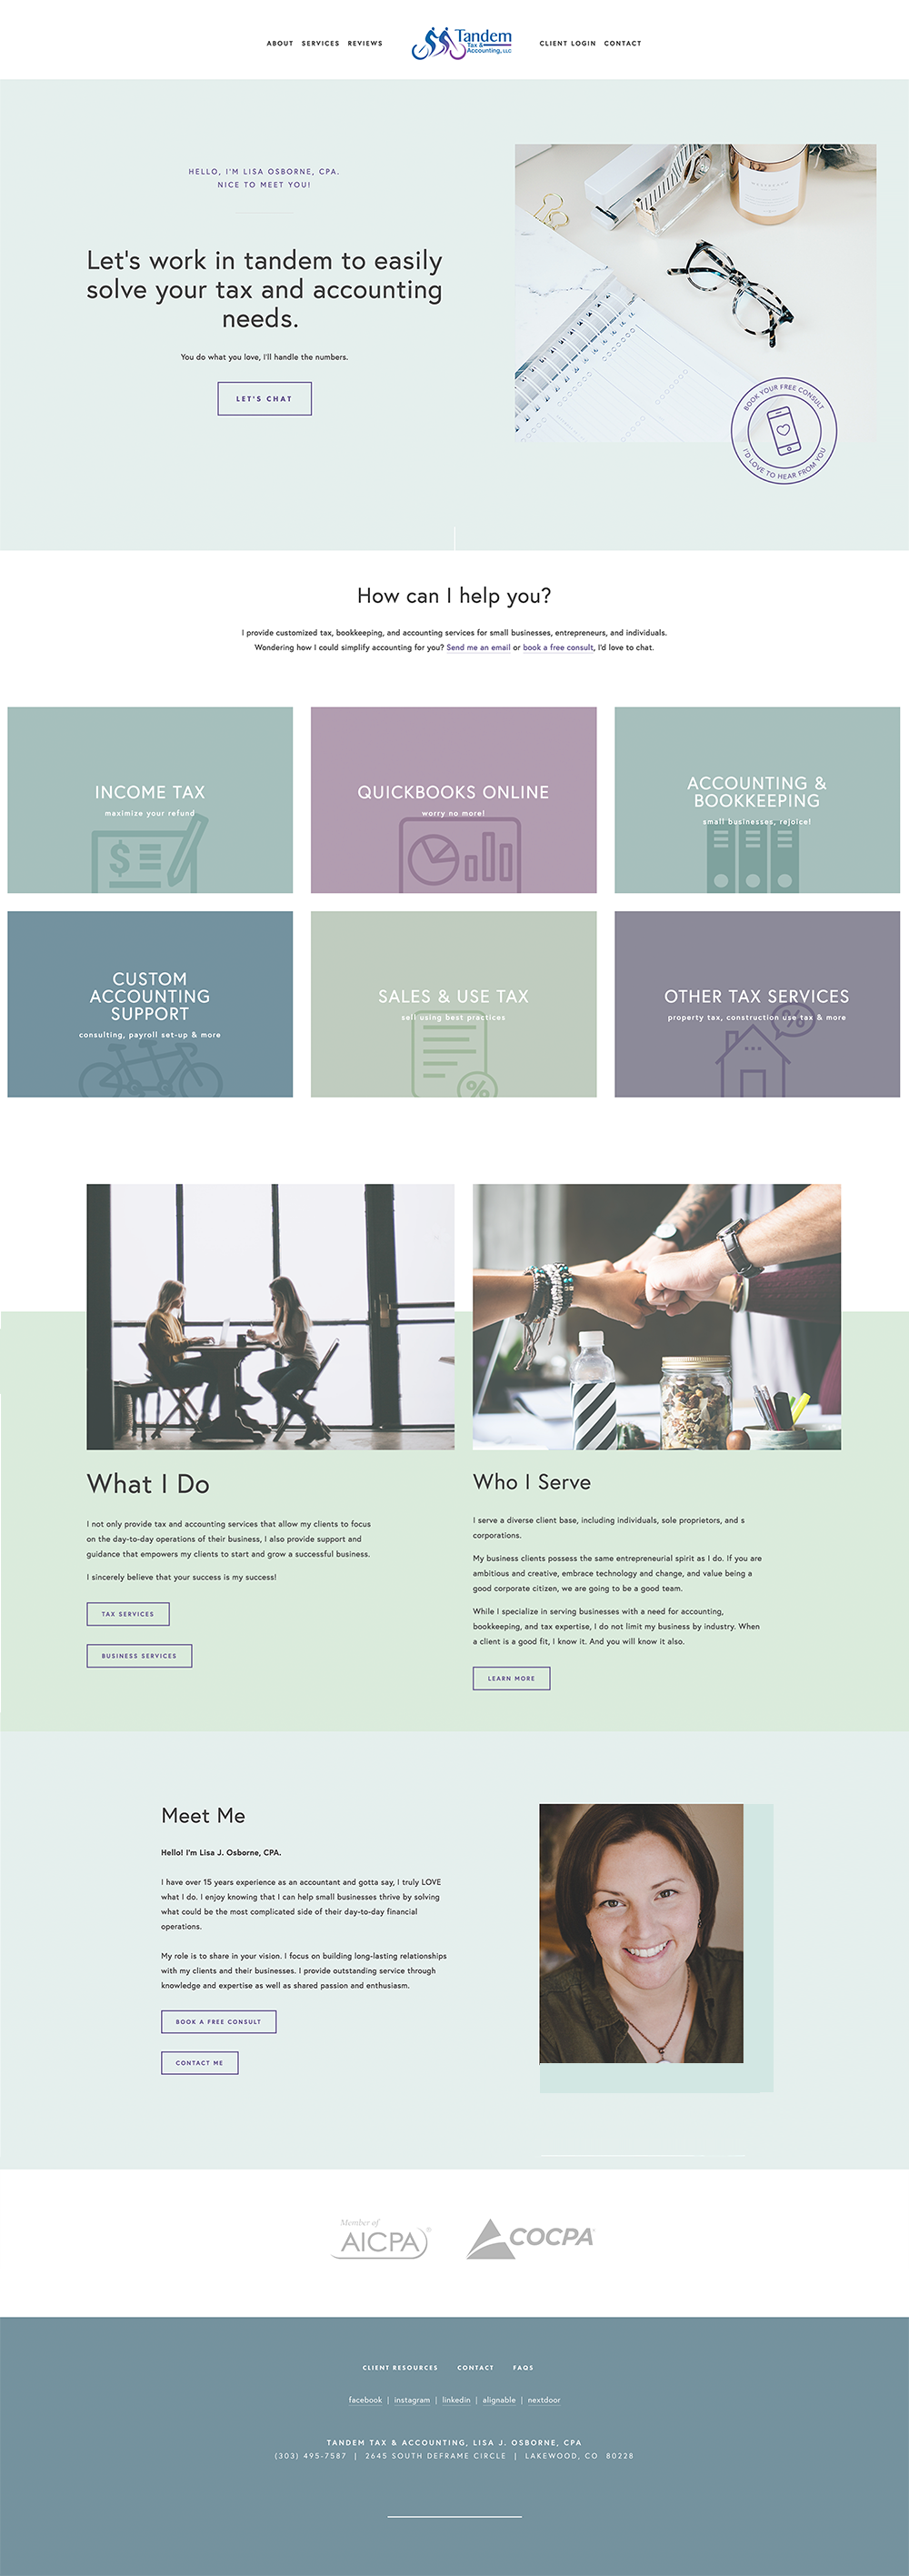 modern-squarespace-website-by-courtney-oliver-tandem-tax-and-accounting.png